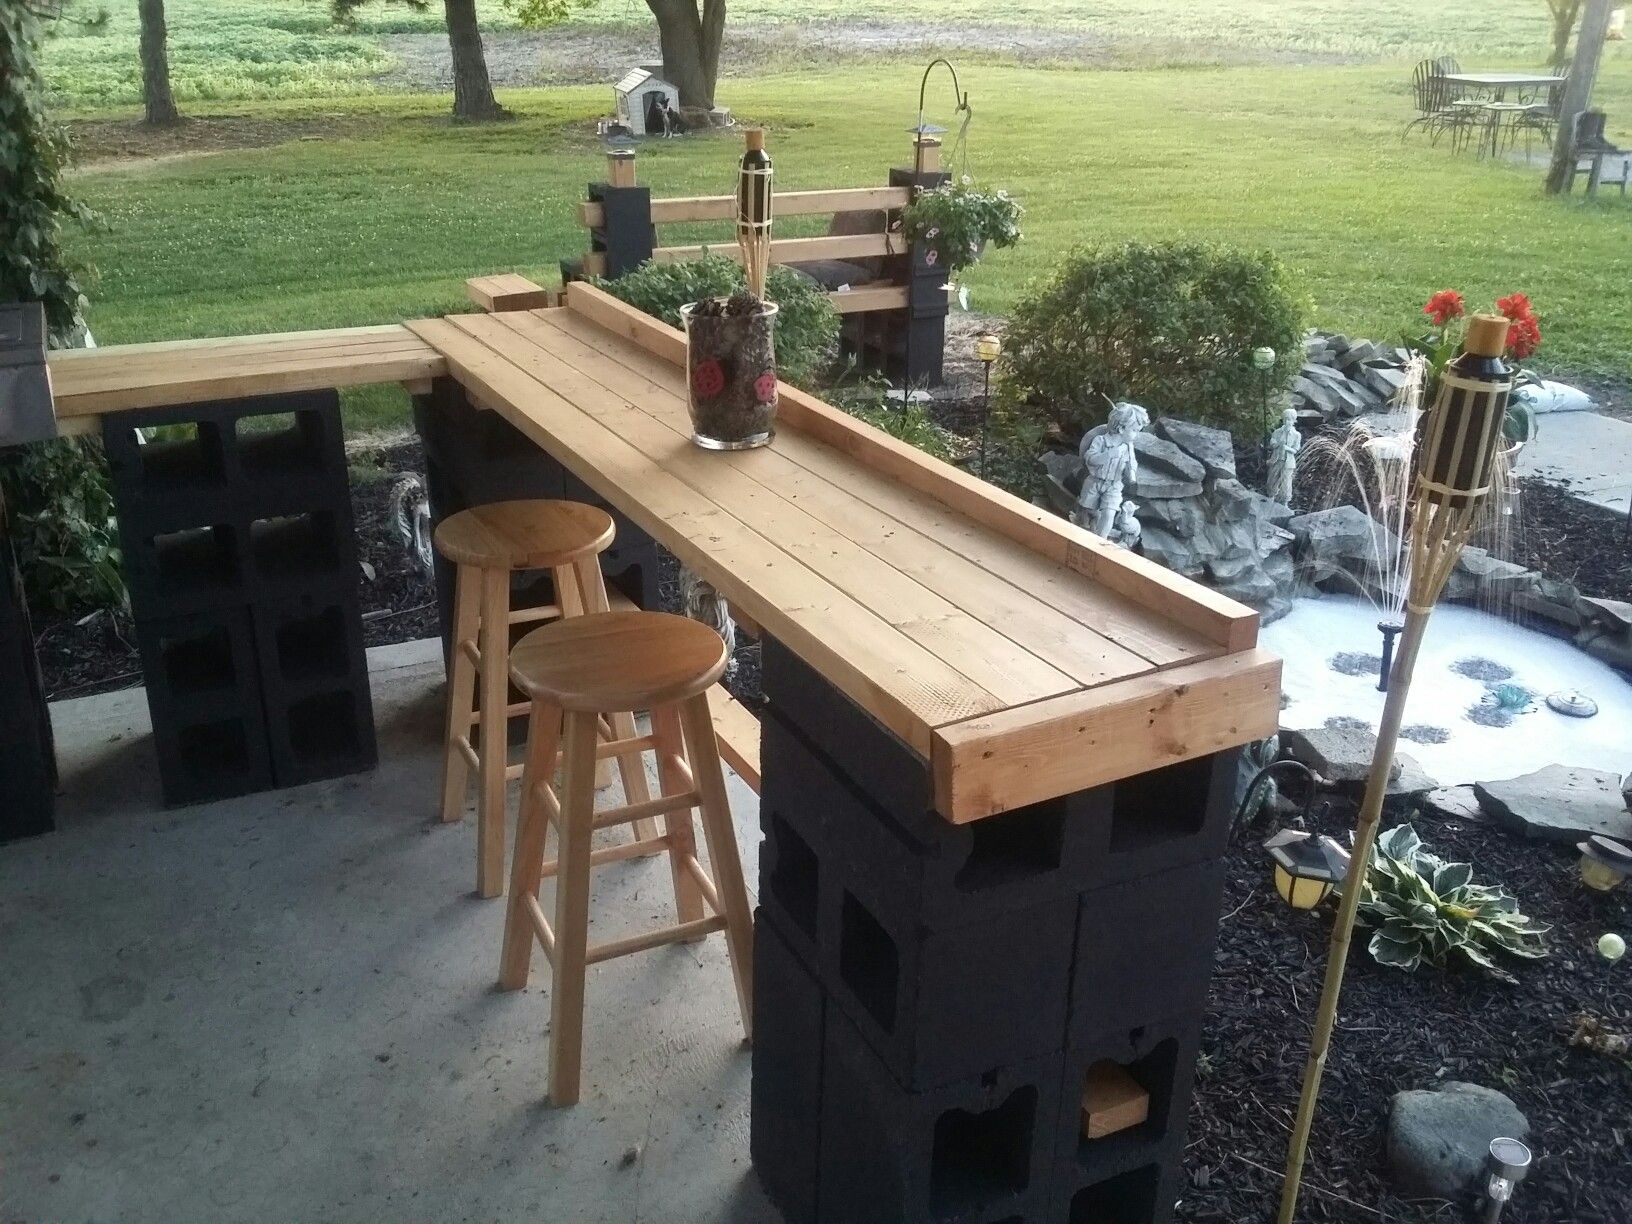 Design Cinder Block Table cinder block patio bar janice lininger pinterest lininger